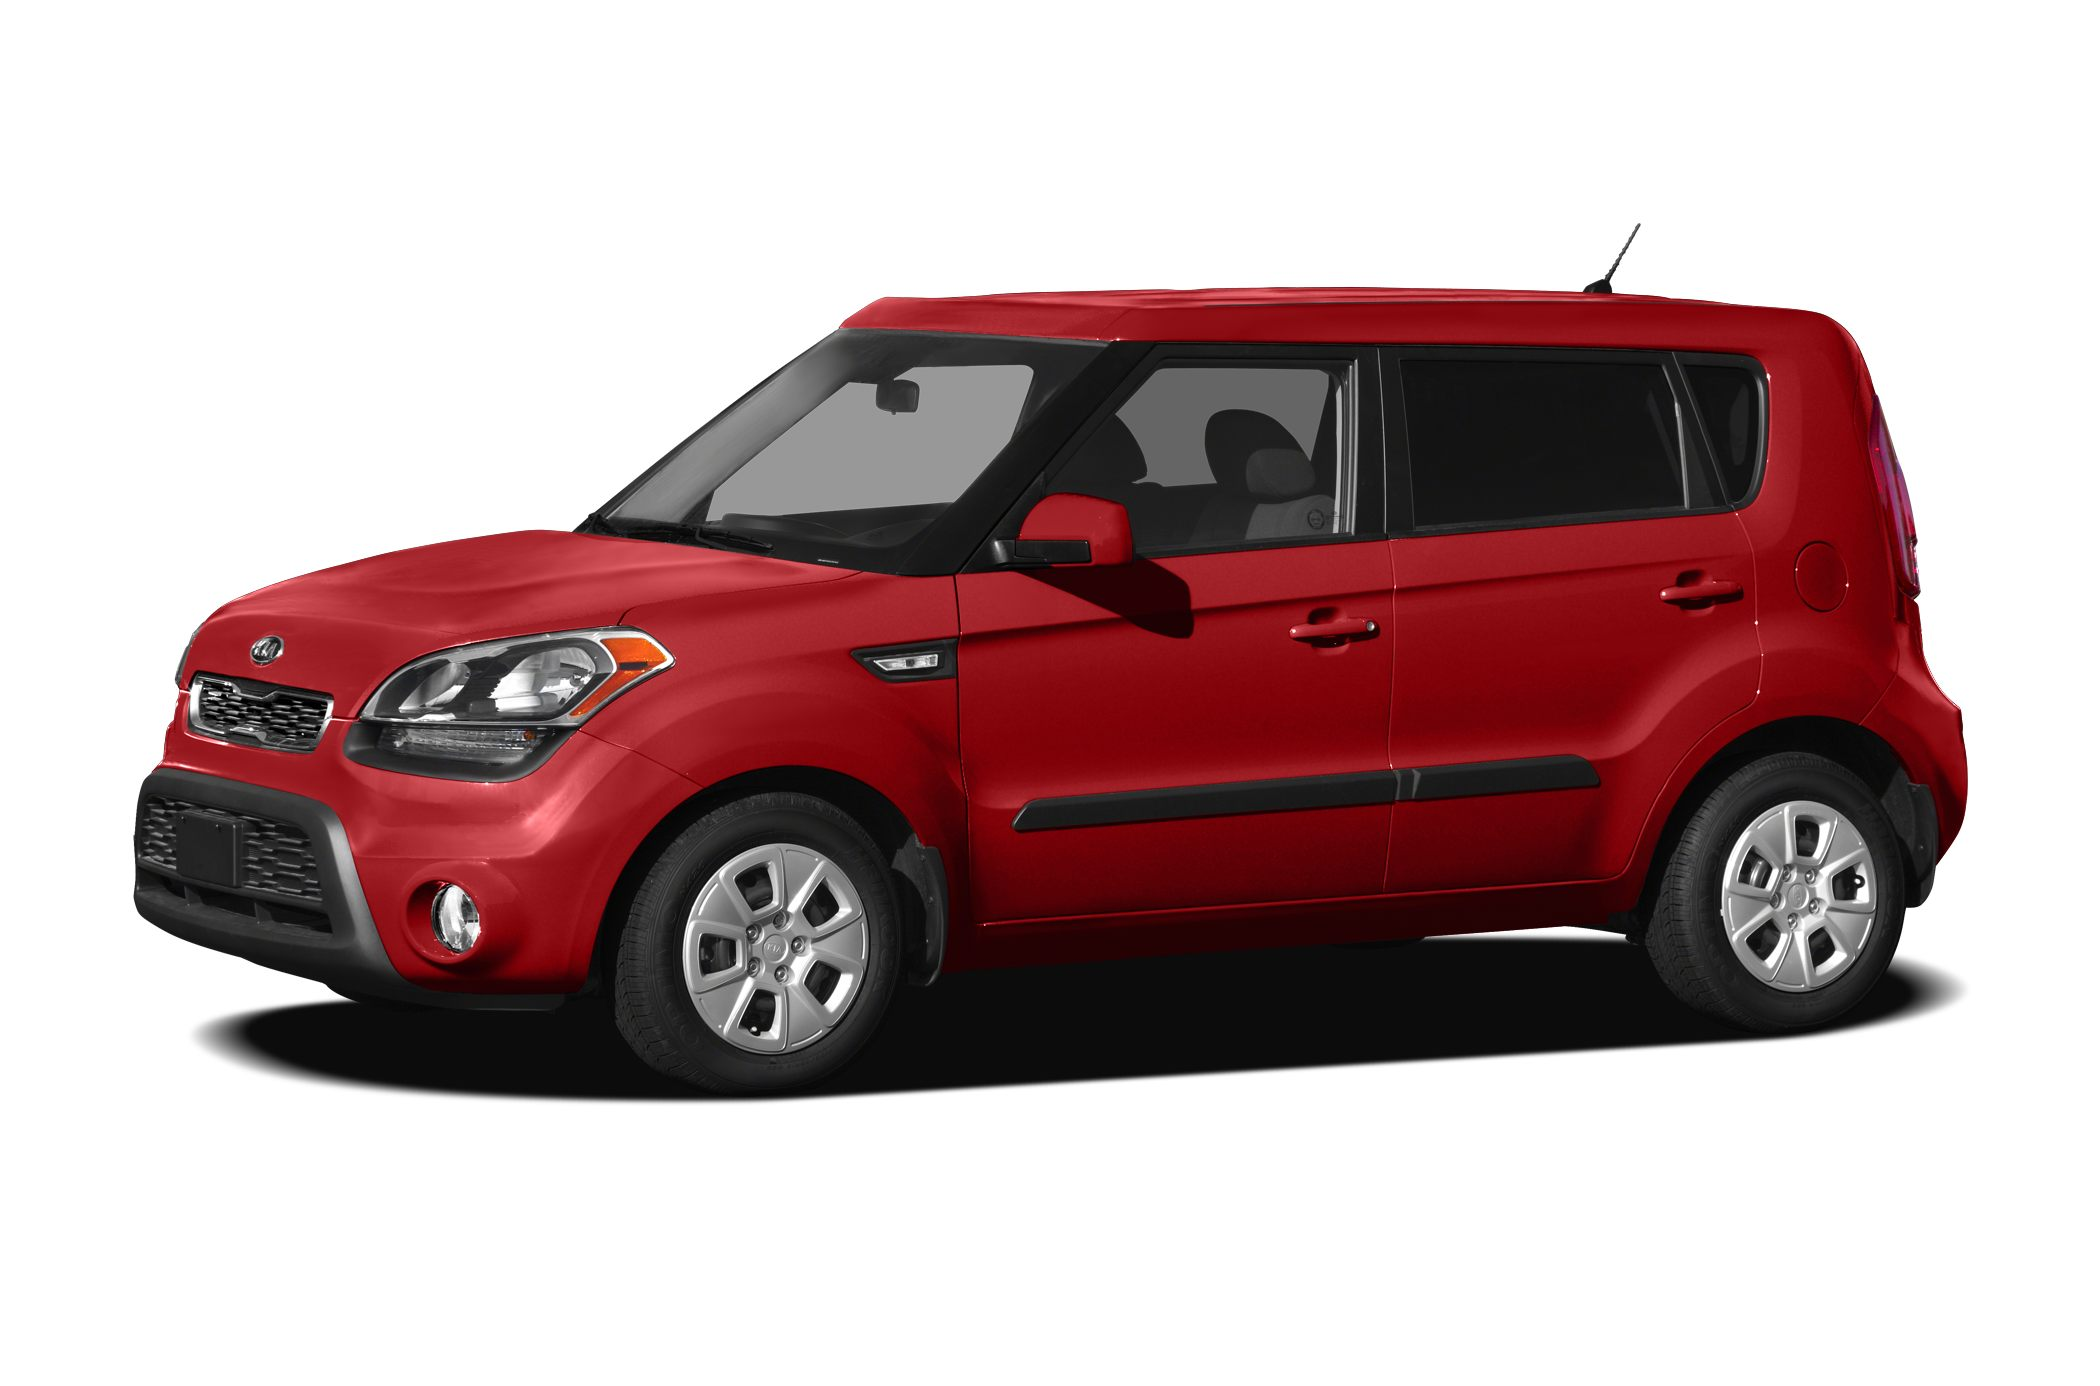 2012 Kia Soul Reviews - Autoblog and New Car Test Drive